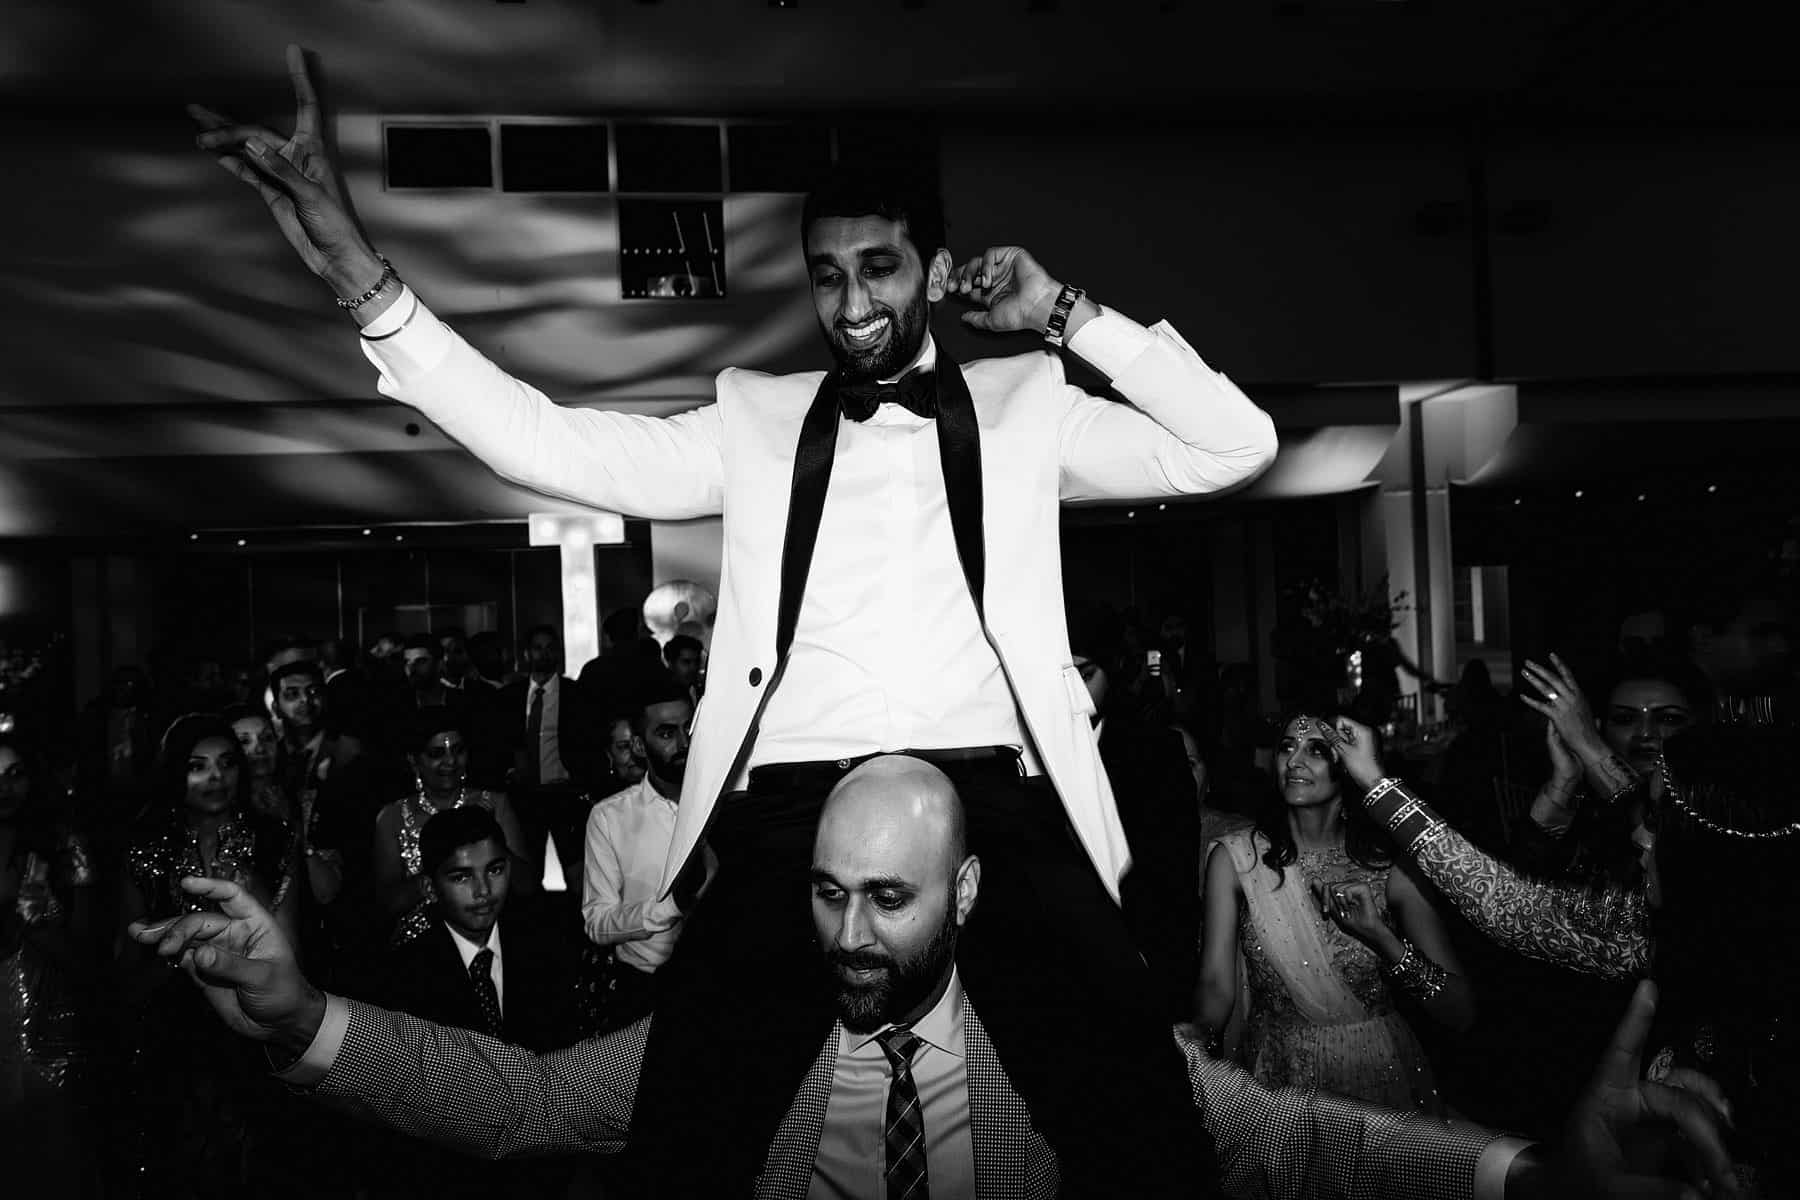 wedding novotel london sikh